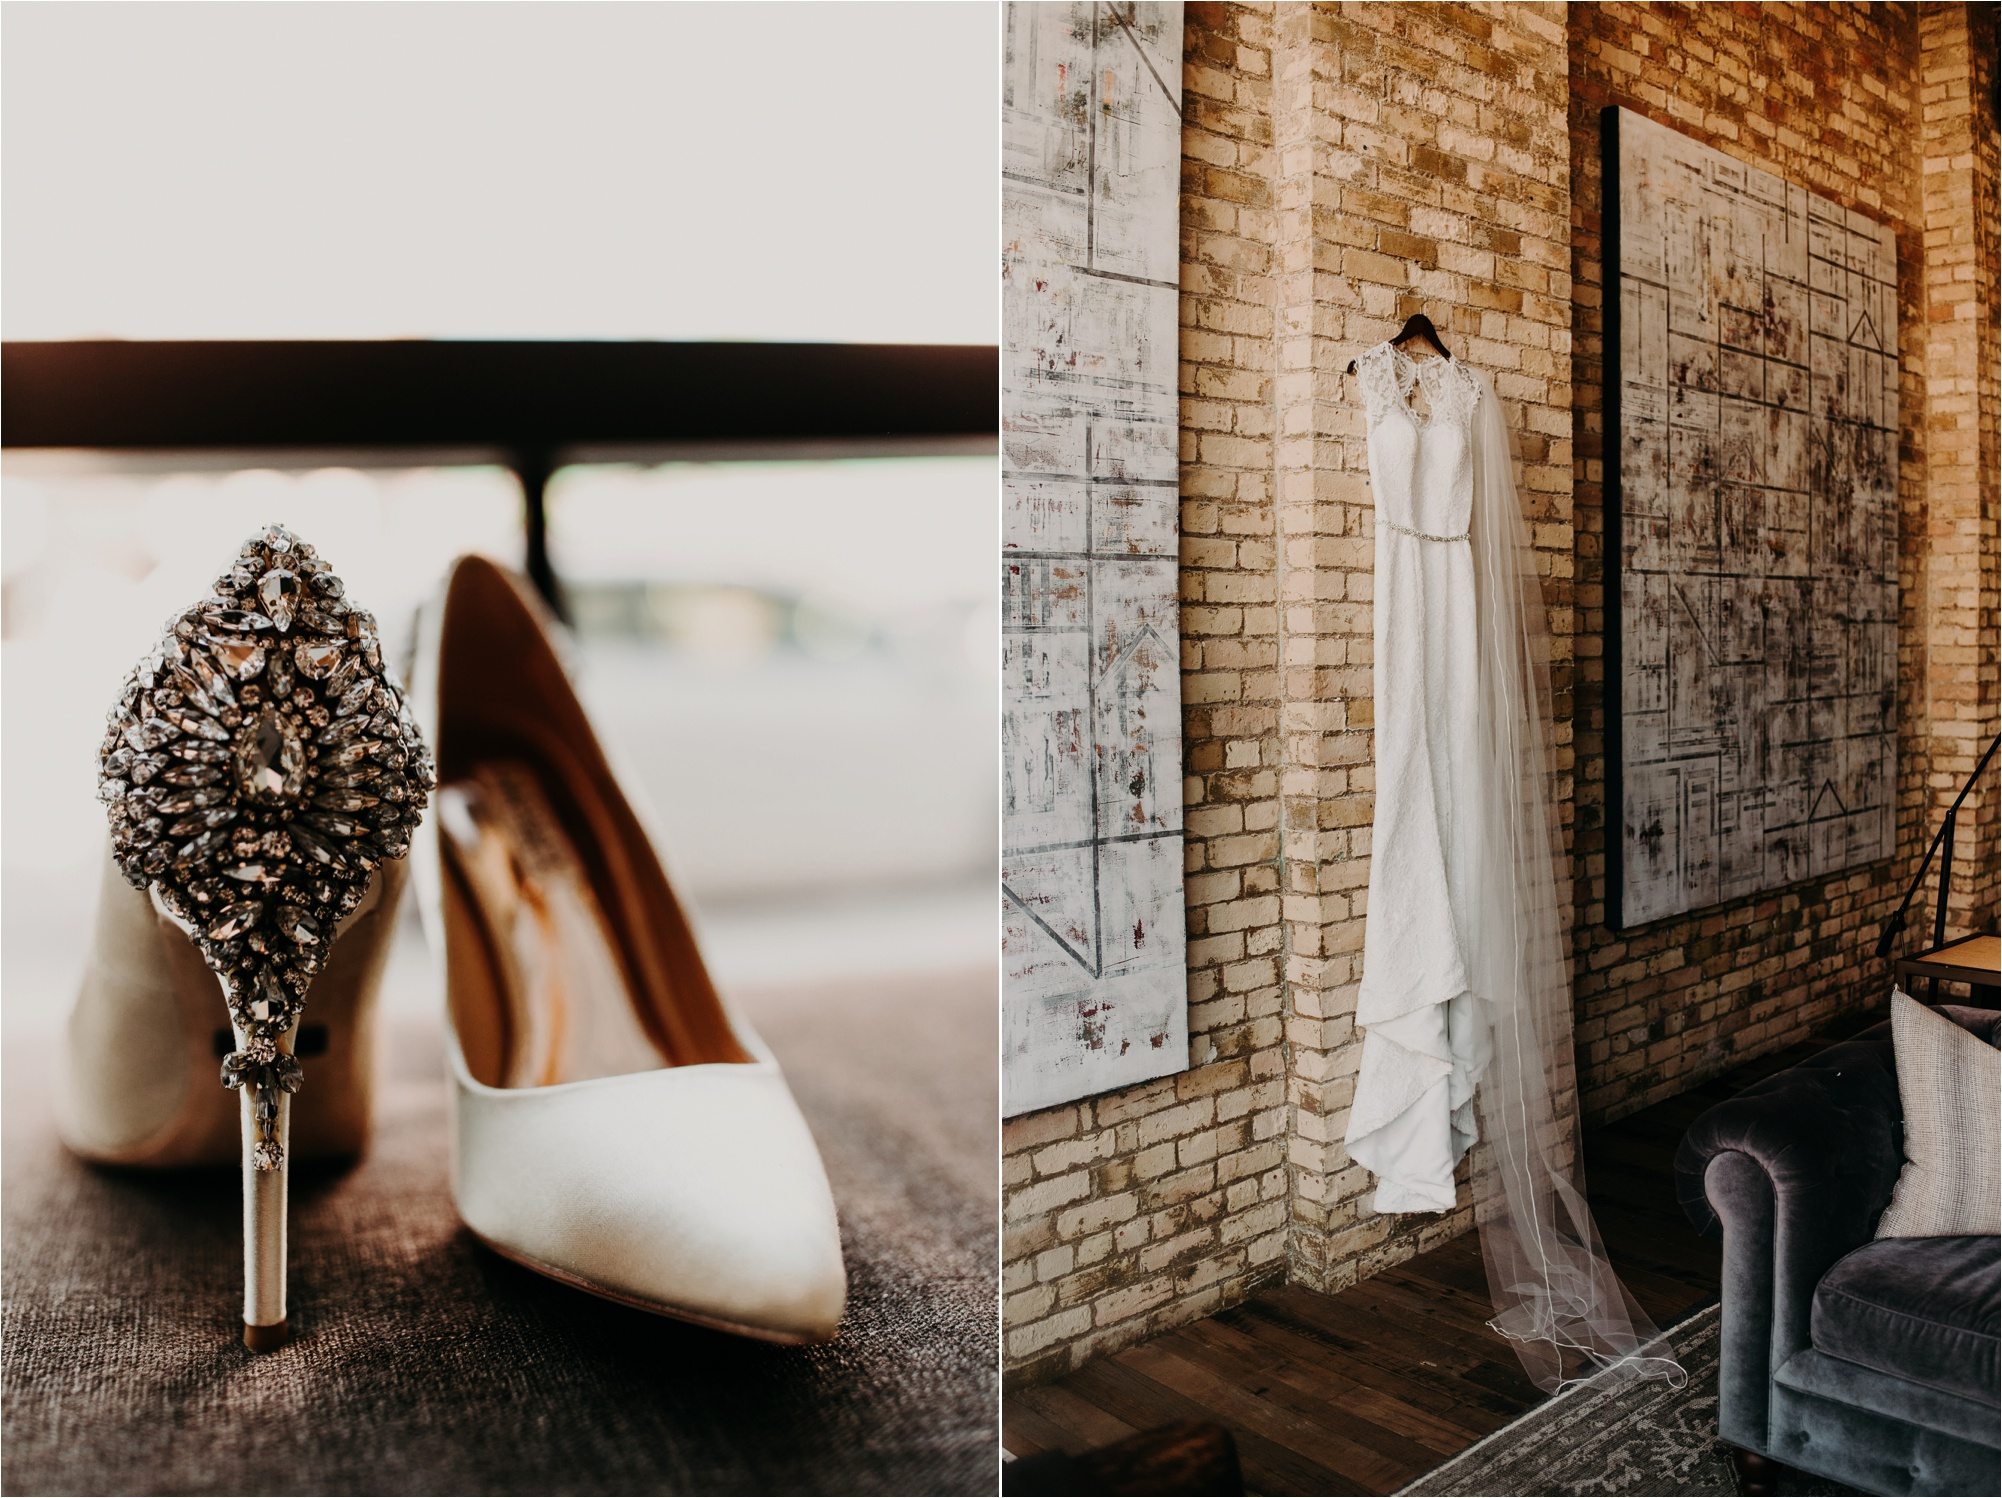 hewing hotel wedding getting ready space photography